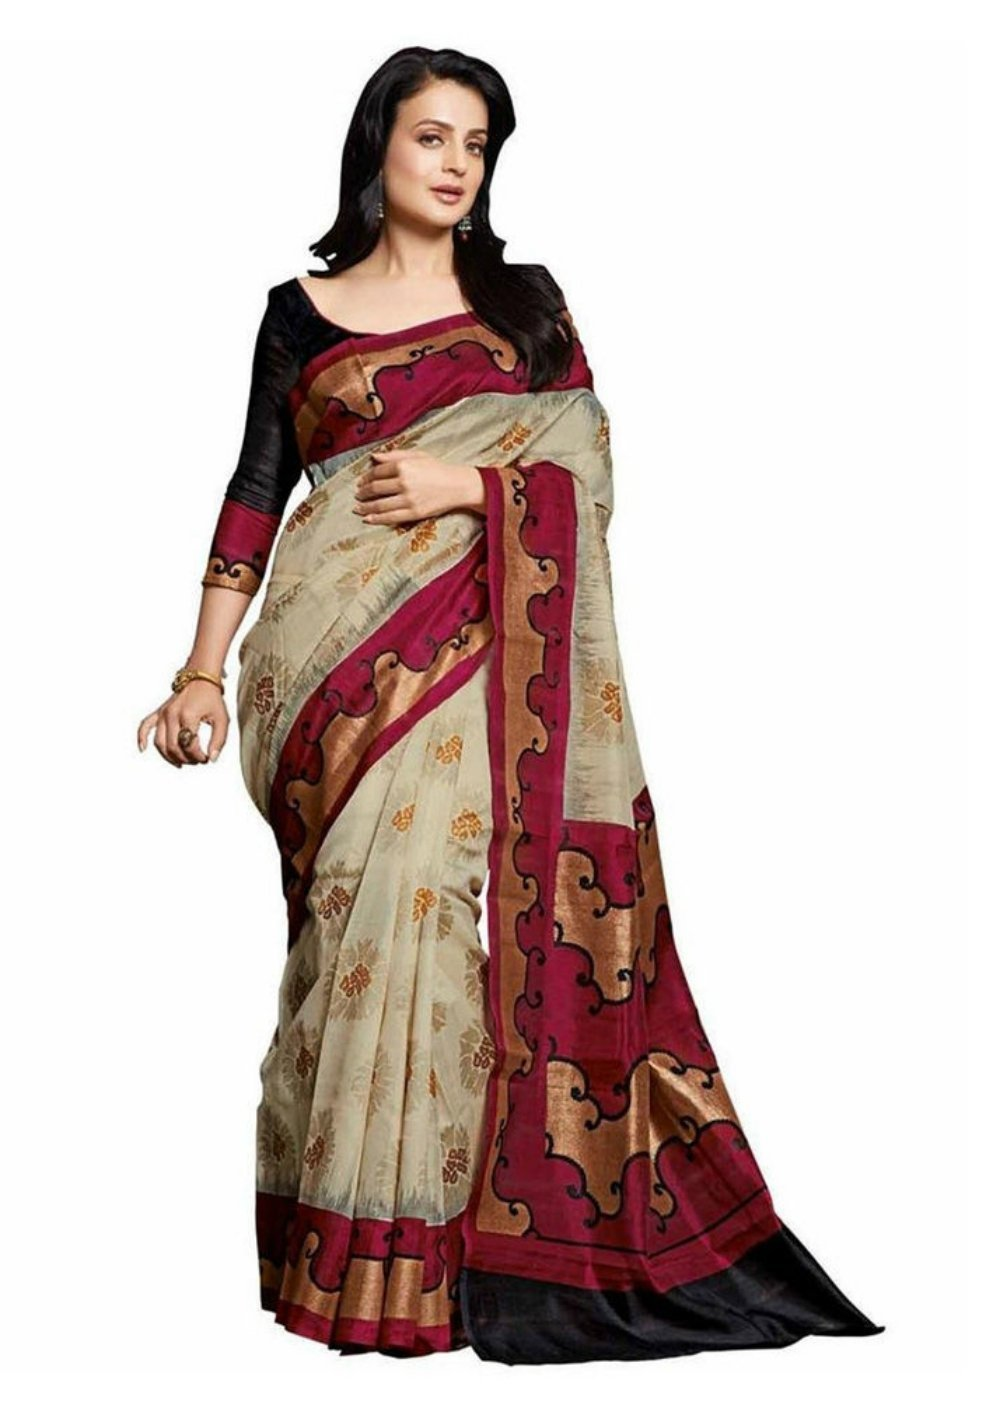 Jaanvi fashion Women's Bhagalpuri Cotton Printed Saree Free Size Beige